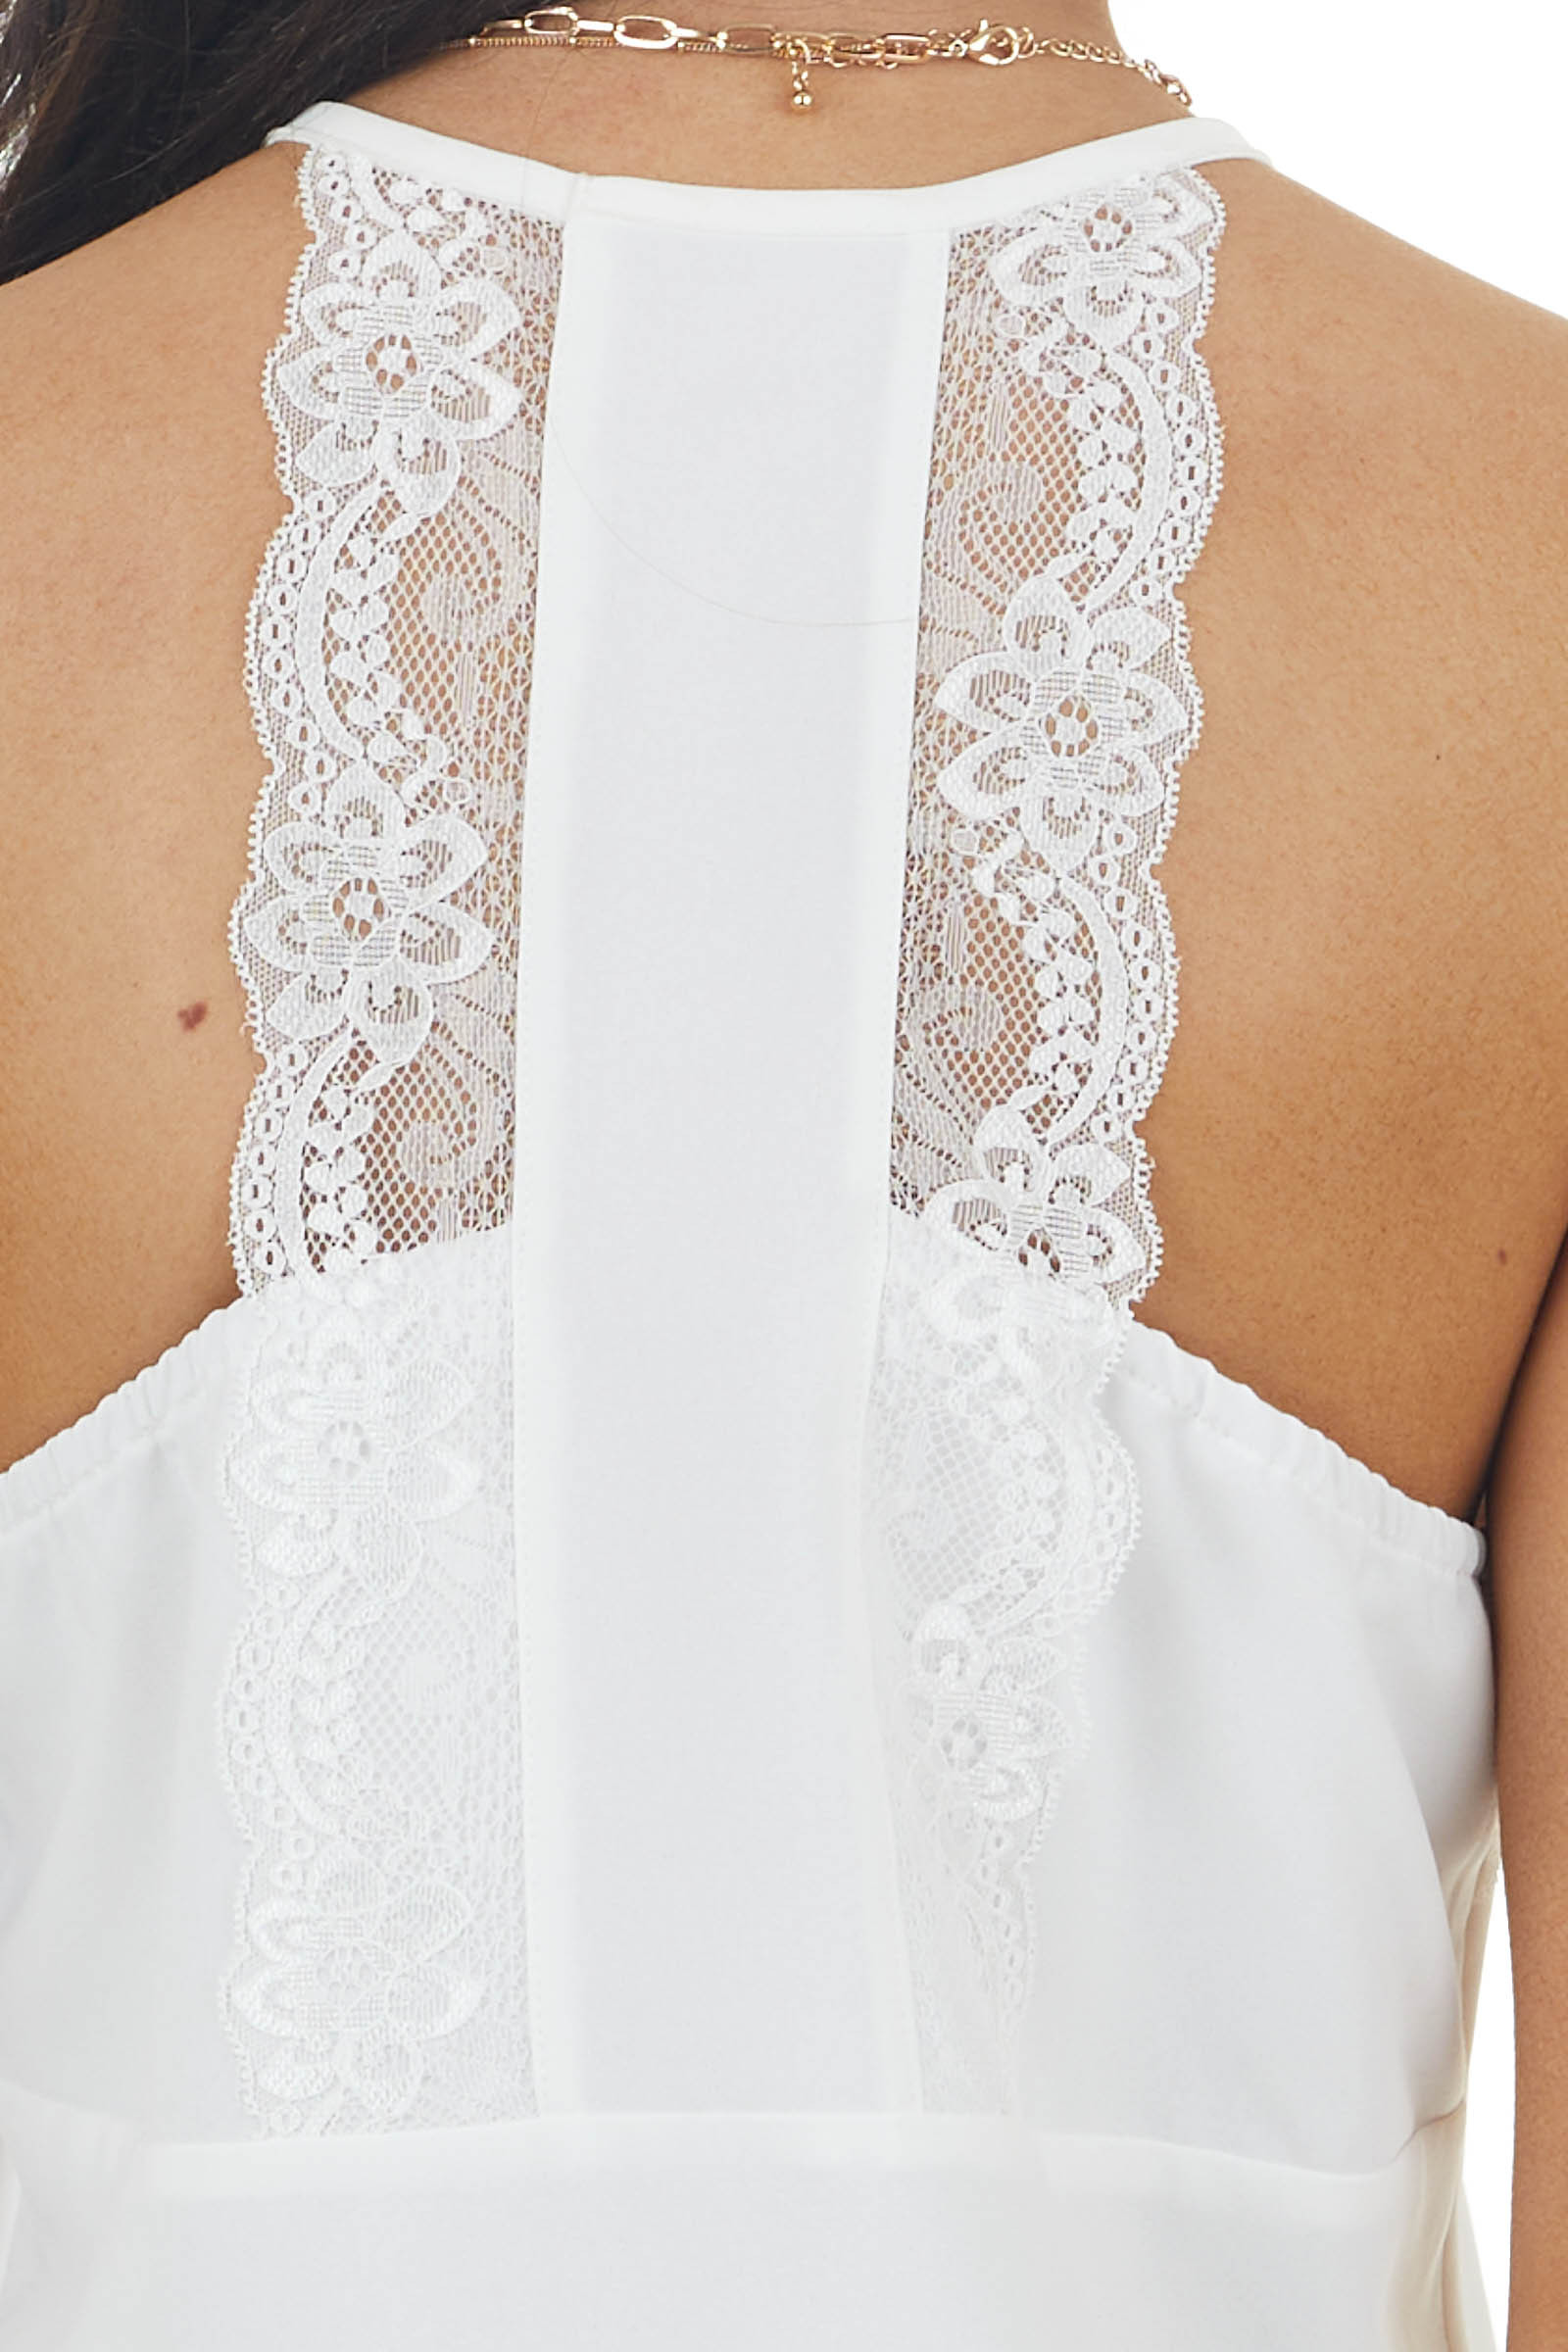 Off White Sleeveless V Neck Cami Tank Top with Lace Detail